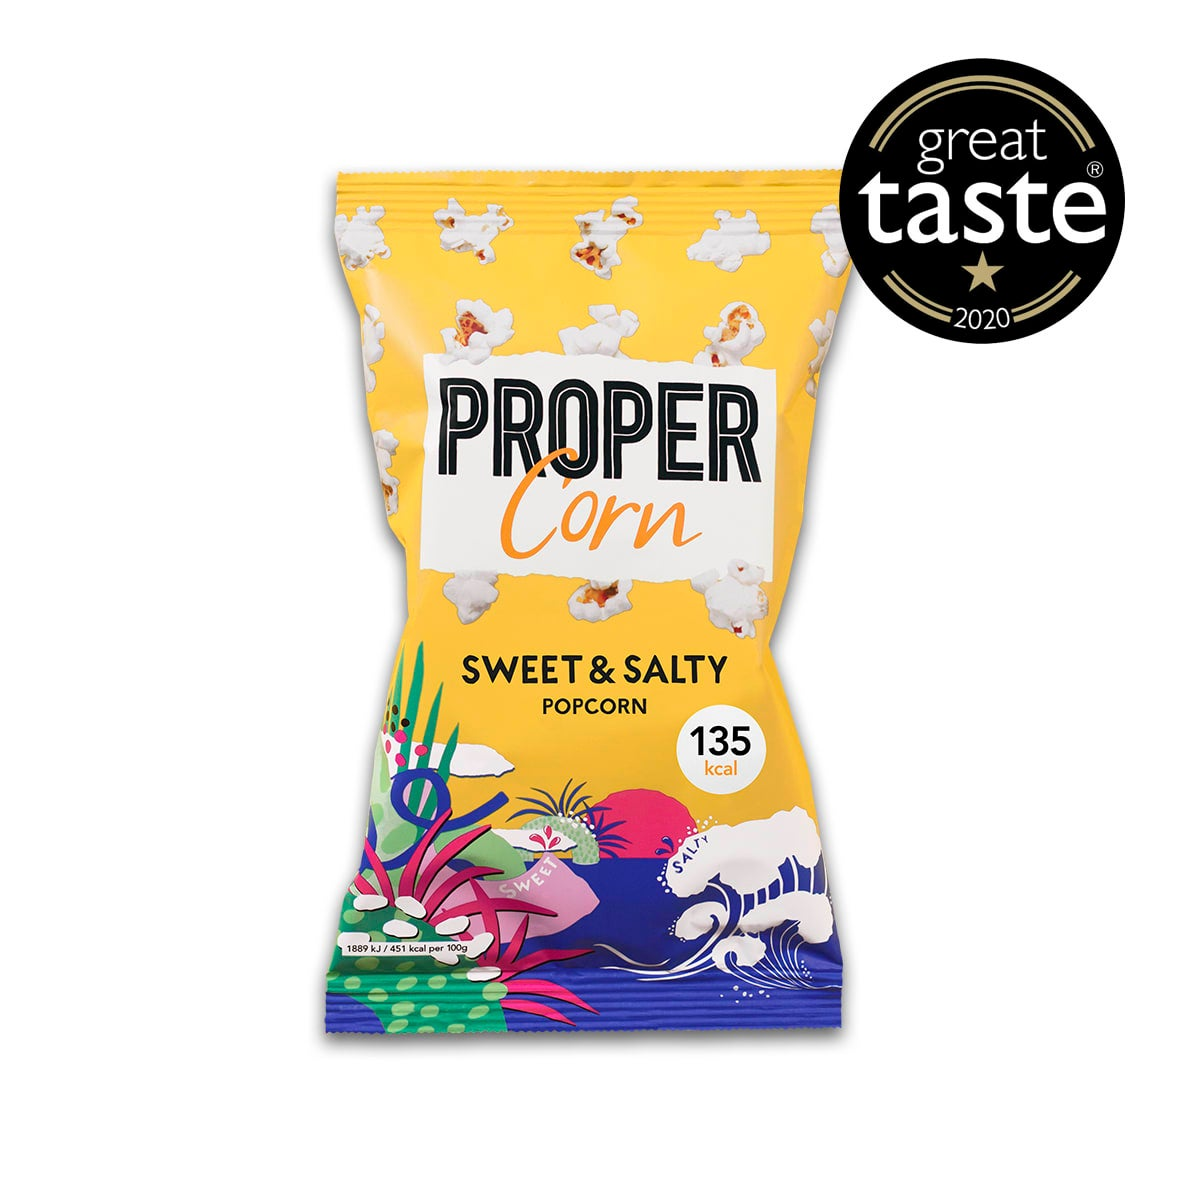 Propercorn Sweet and Salty Popcorn, 30g bag, sea salt and sweet raw cane sugar, 5 SmartPoints values per bag, gluten free, suitable for vegans